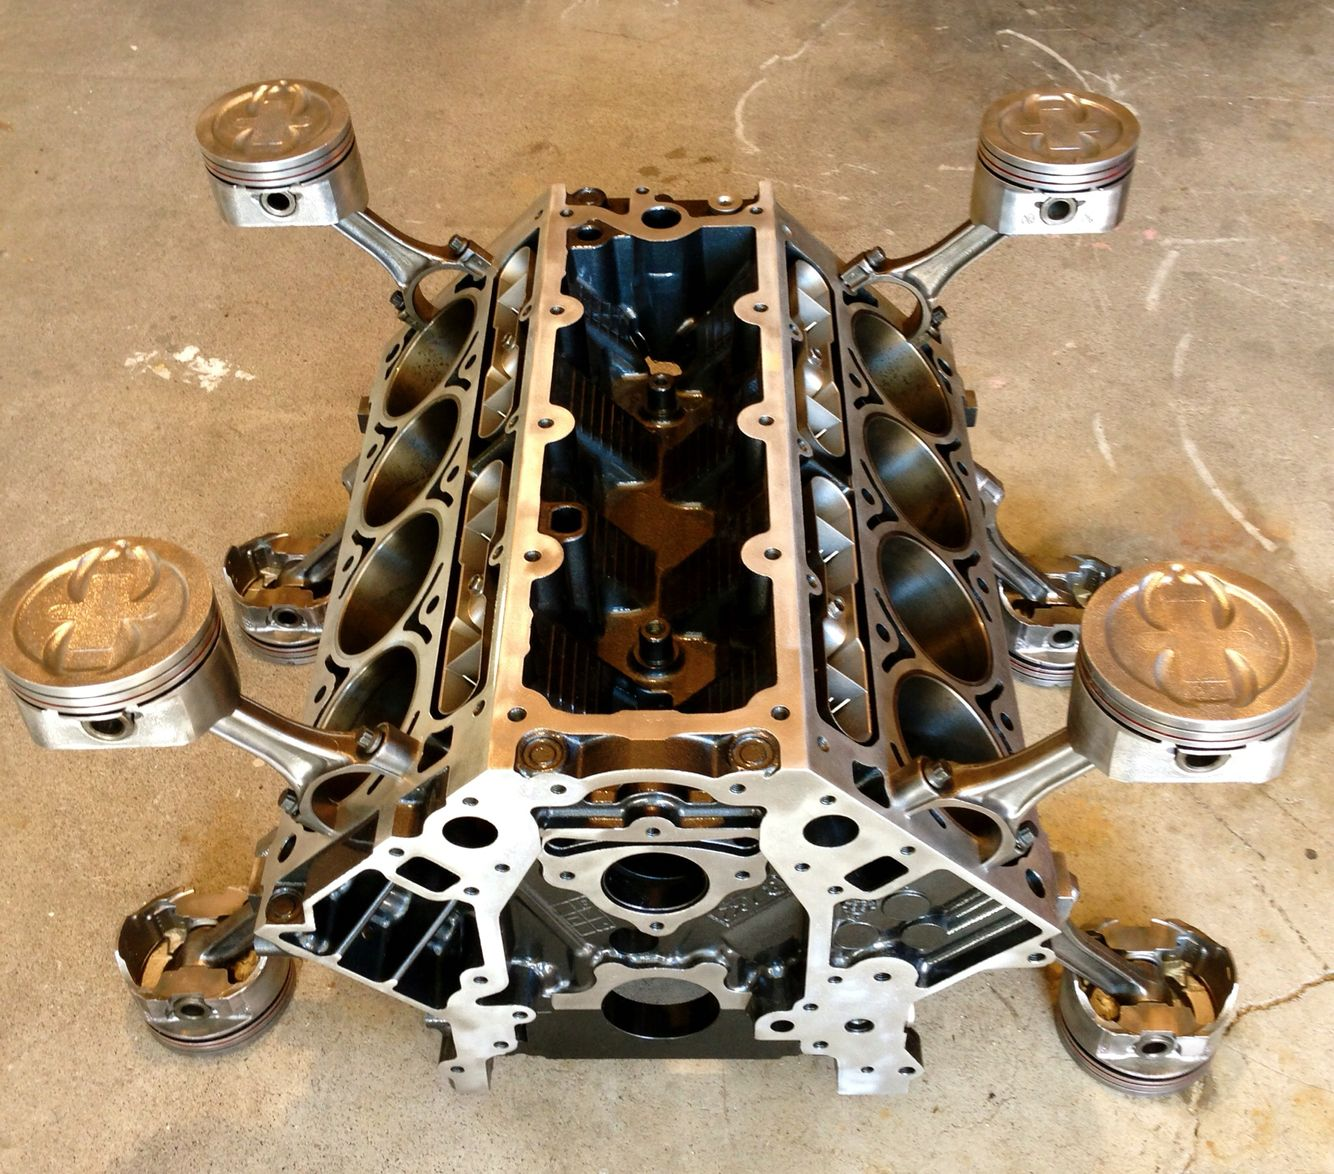 LS1 Corvette Coffee Table Www.Badassblox.Com